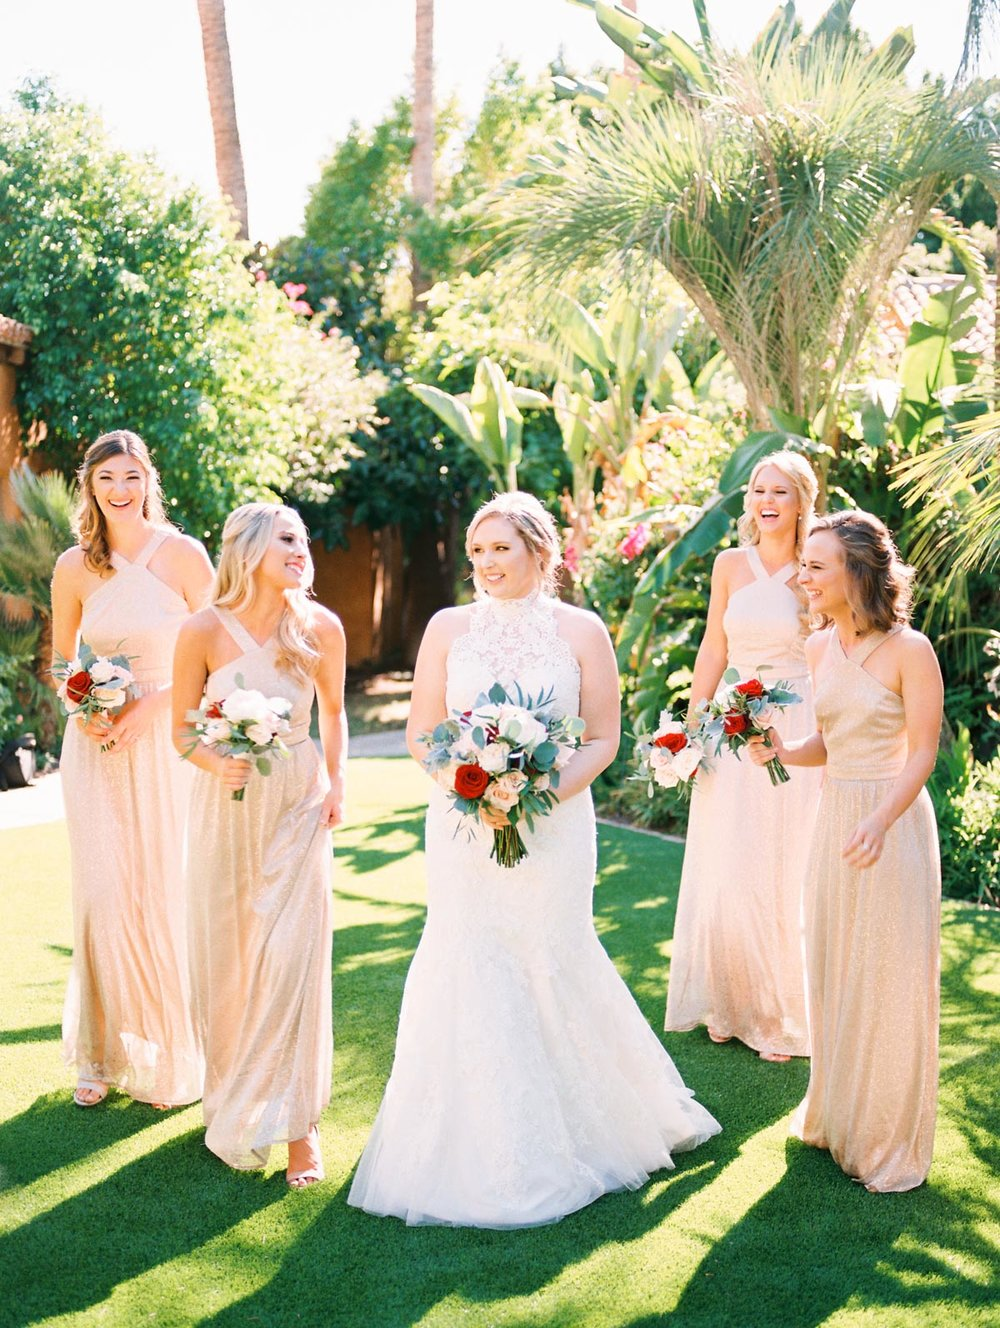 bride-laughing-bridesmaids.jpg